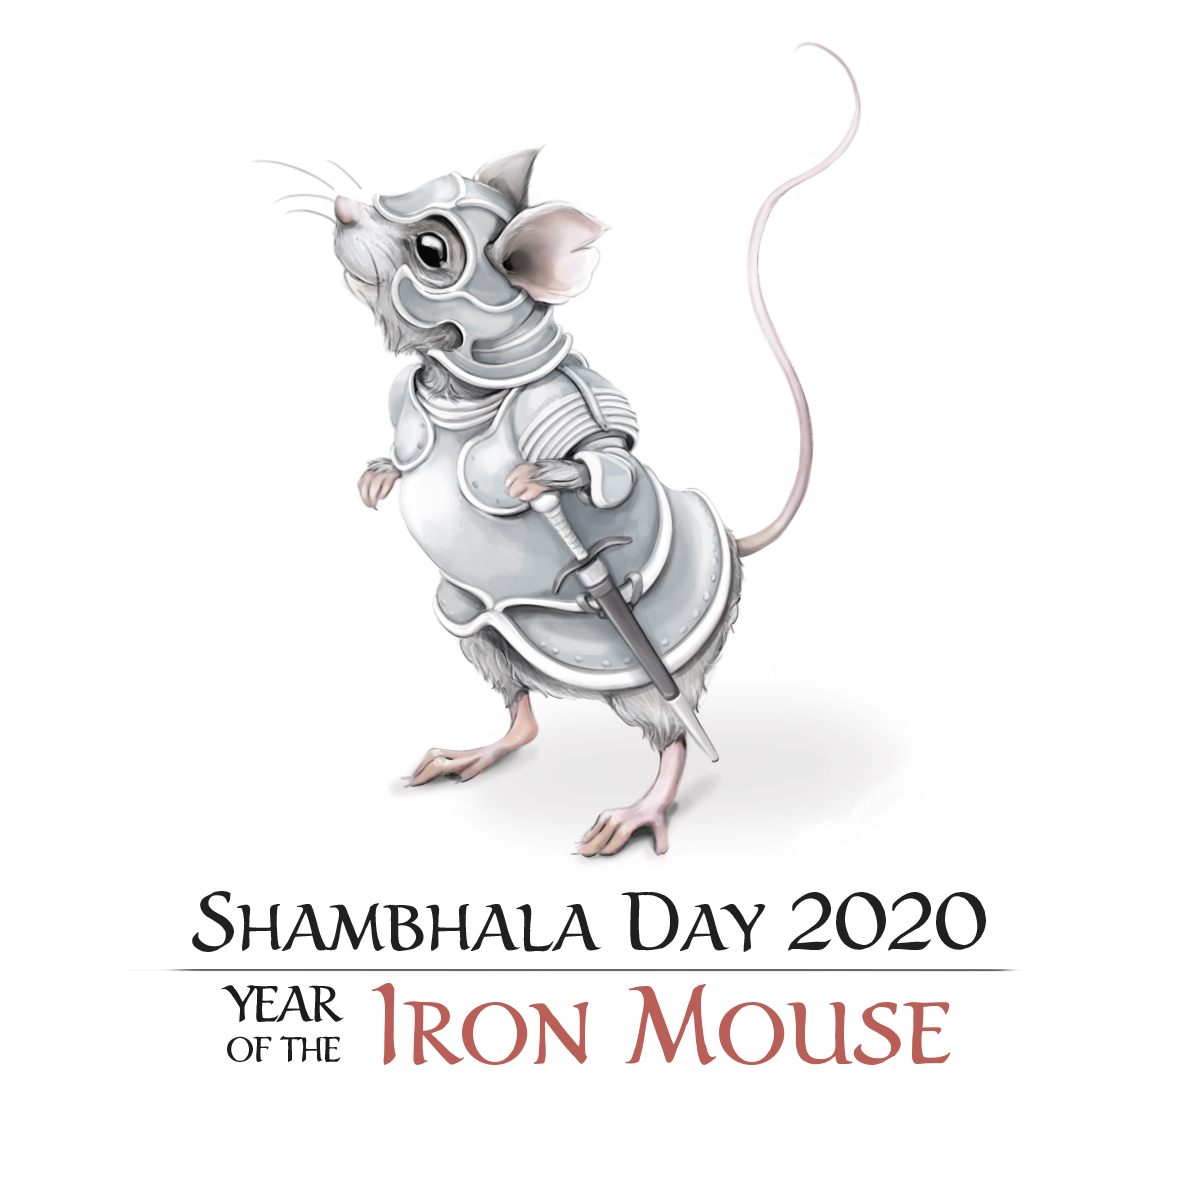 2020: The year of the iron mouse